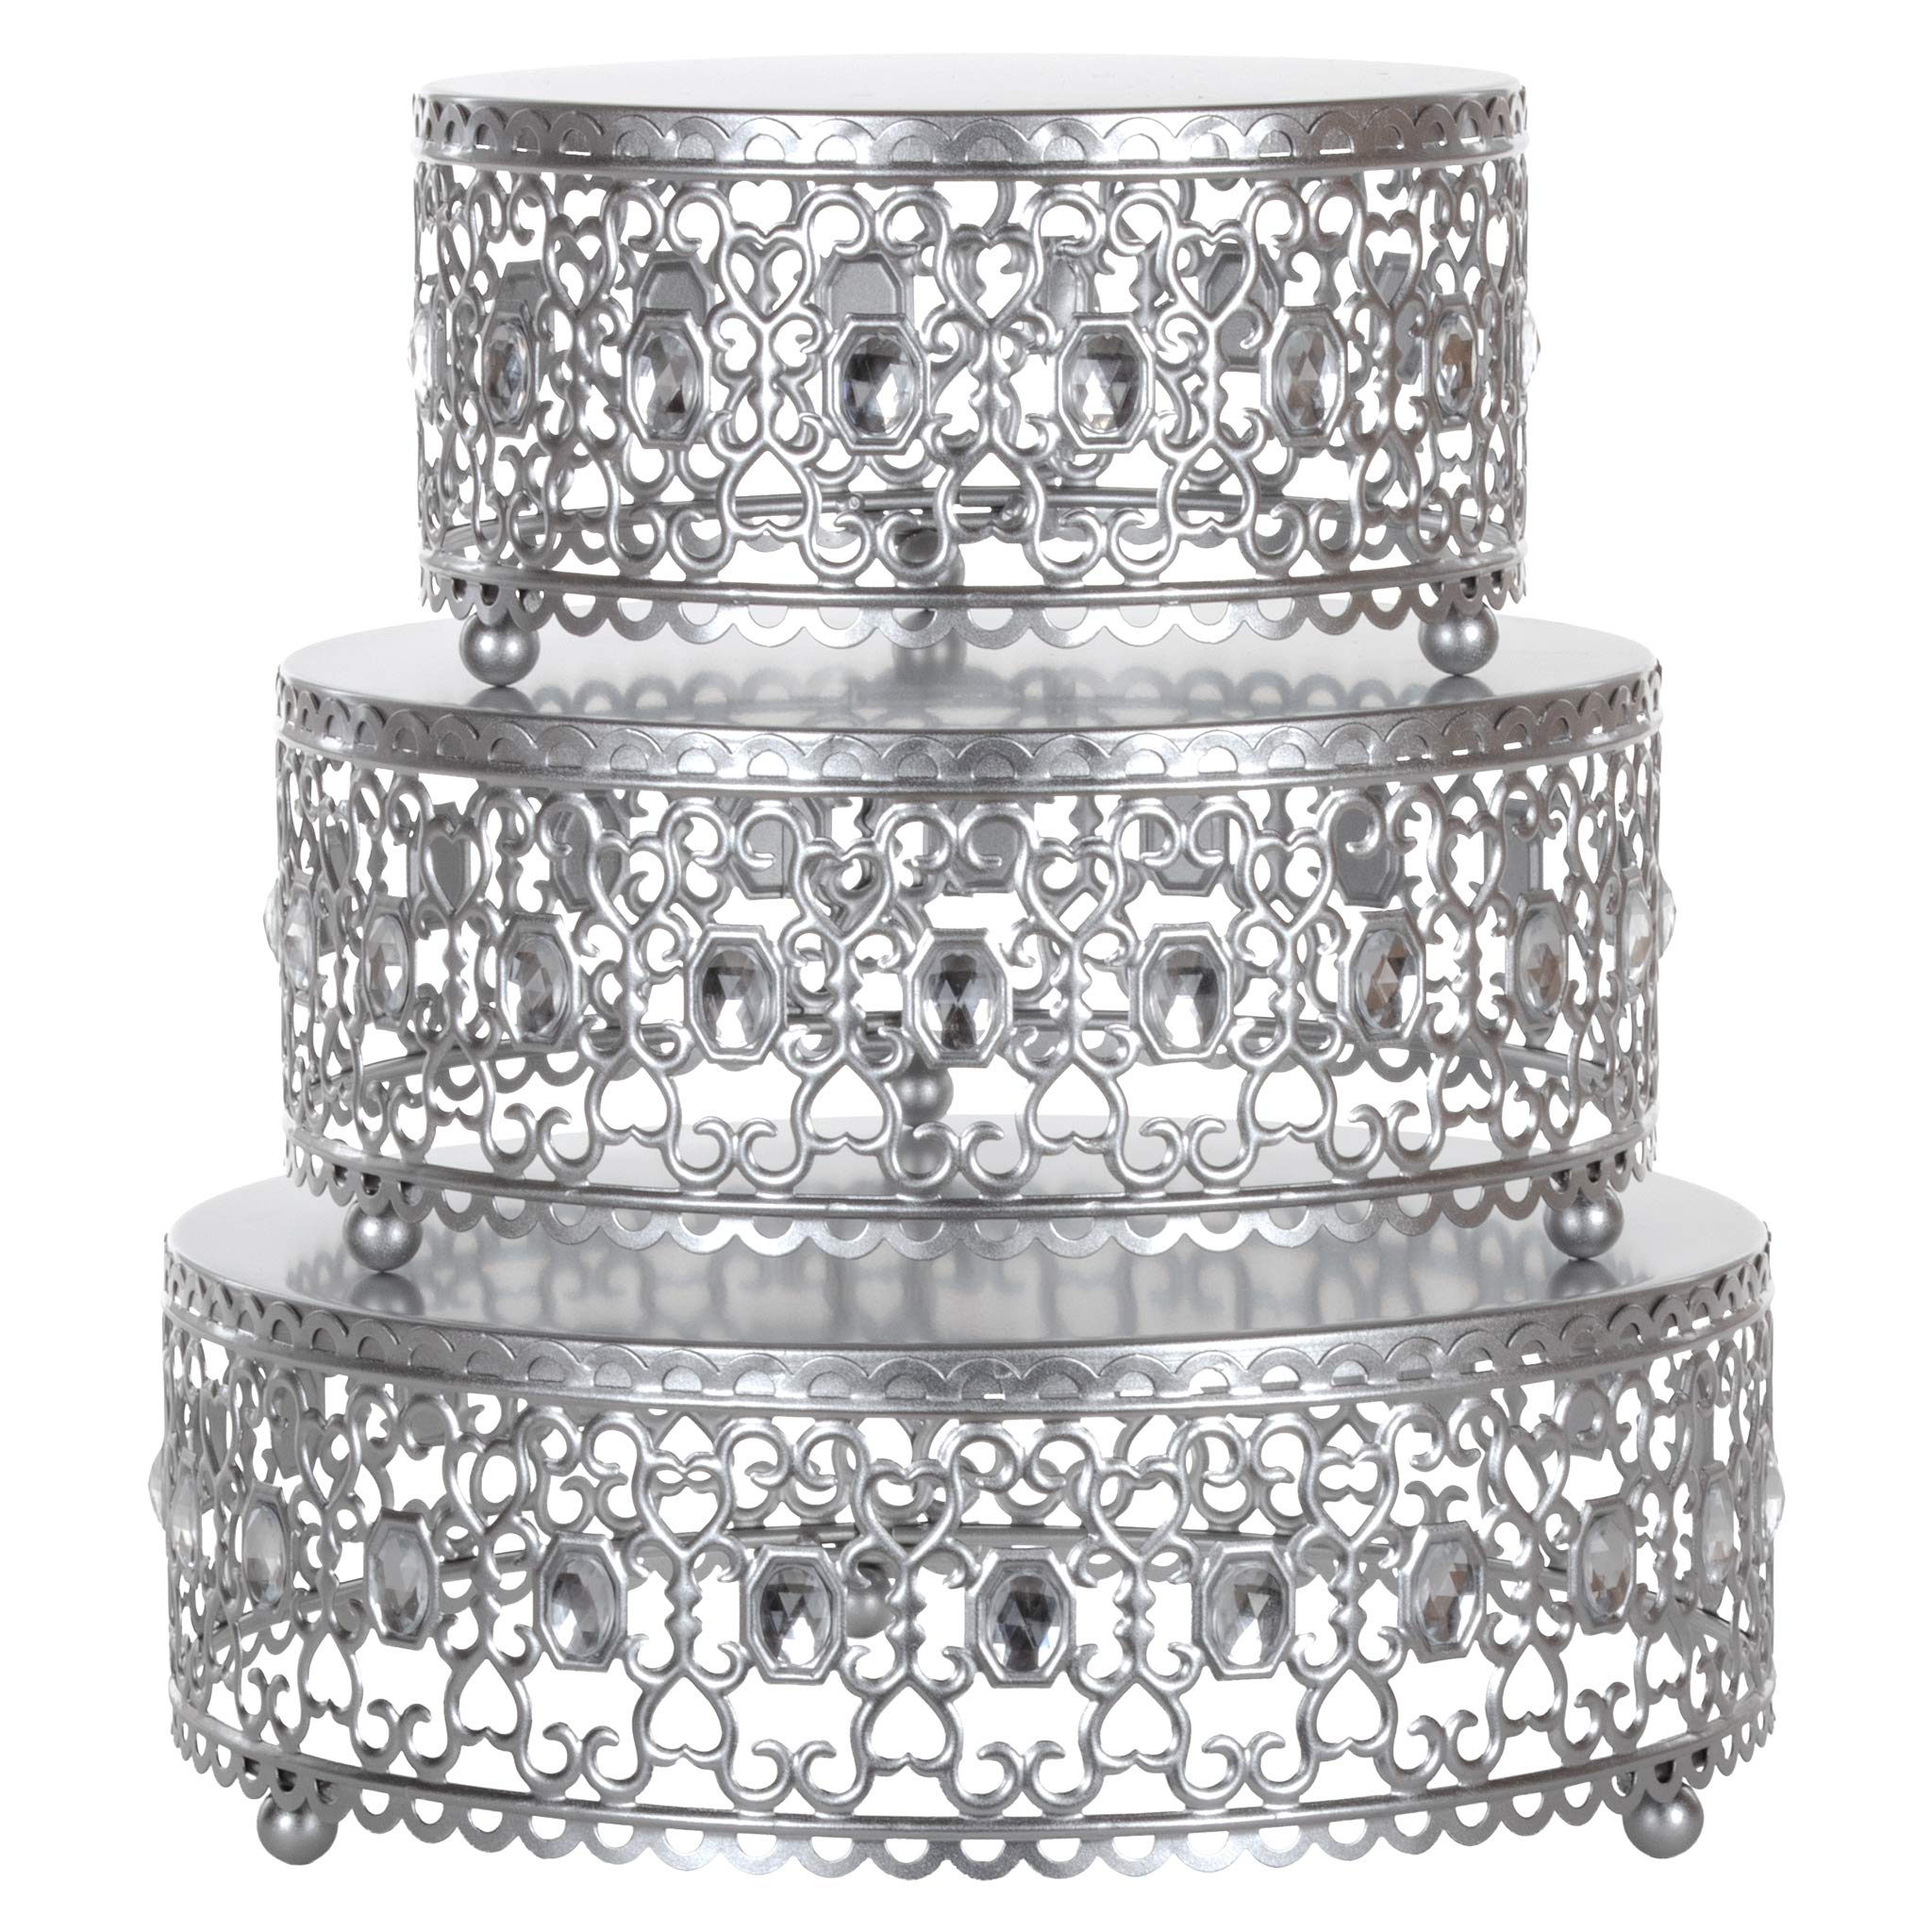 Amalfi Decor Cake Stand Plateau Riser Set of 3 Pack, Dessert Cupcake Pastry Candy Display Plate for Wedding Event Birthday Party, Round Metal Pedestal Holder with Crystal Gems, Silver by Amalfi Décor